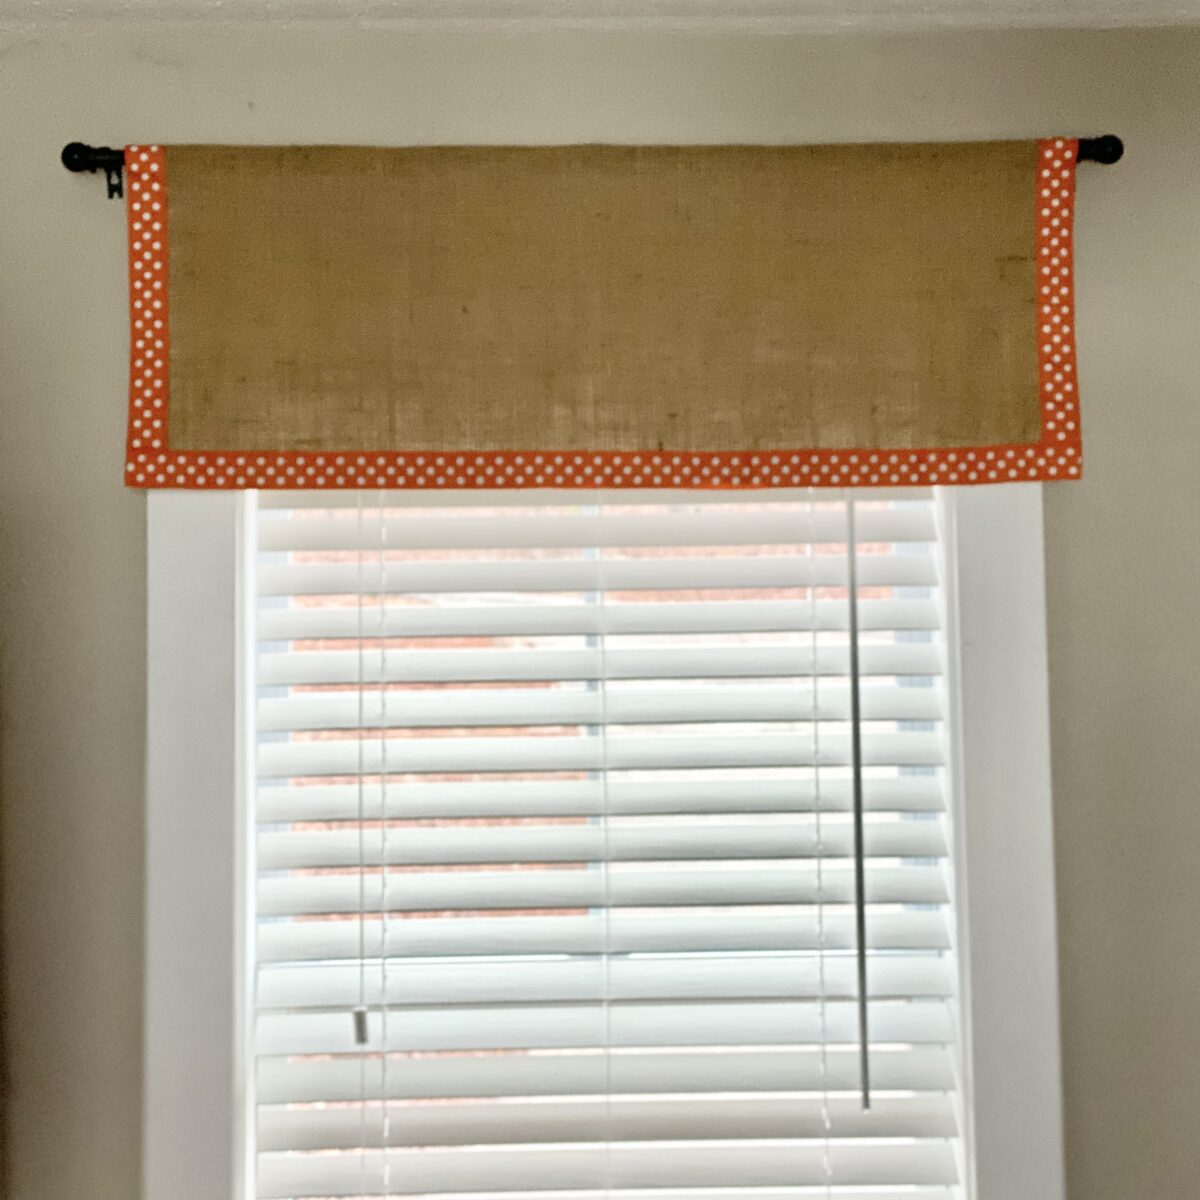 How to Sew a Burlap Valance with a Ribbon Accent